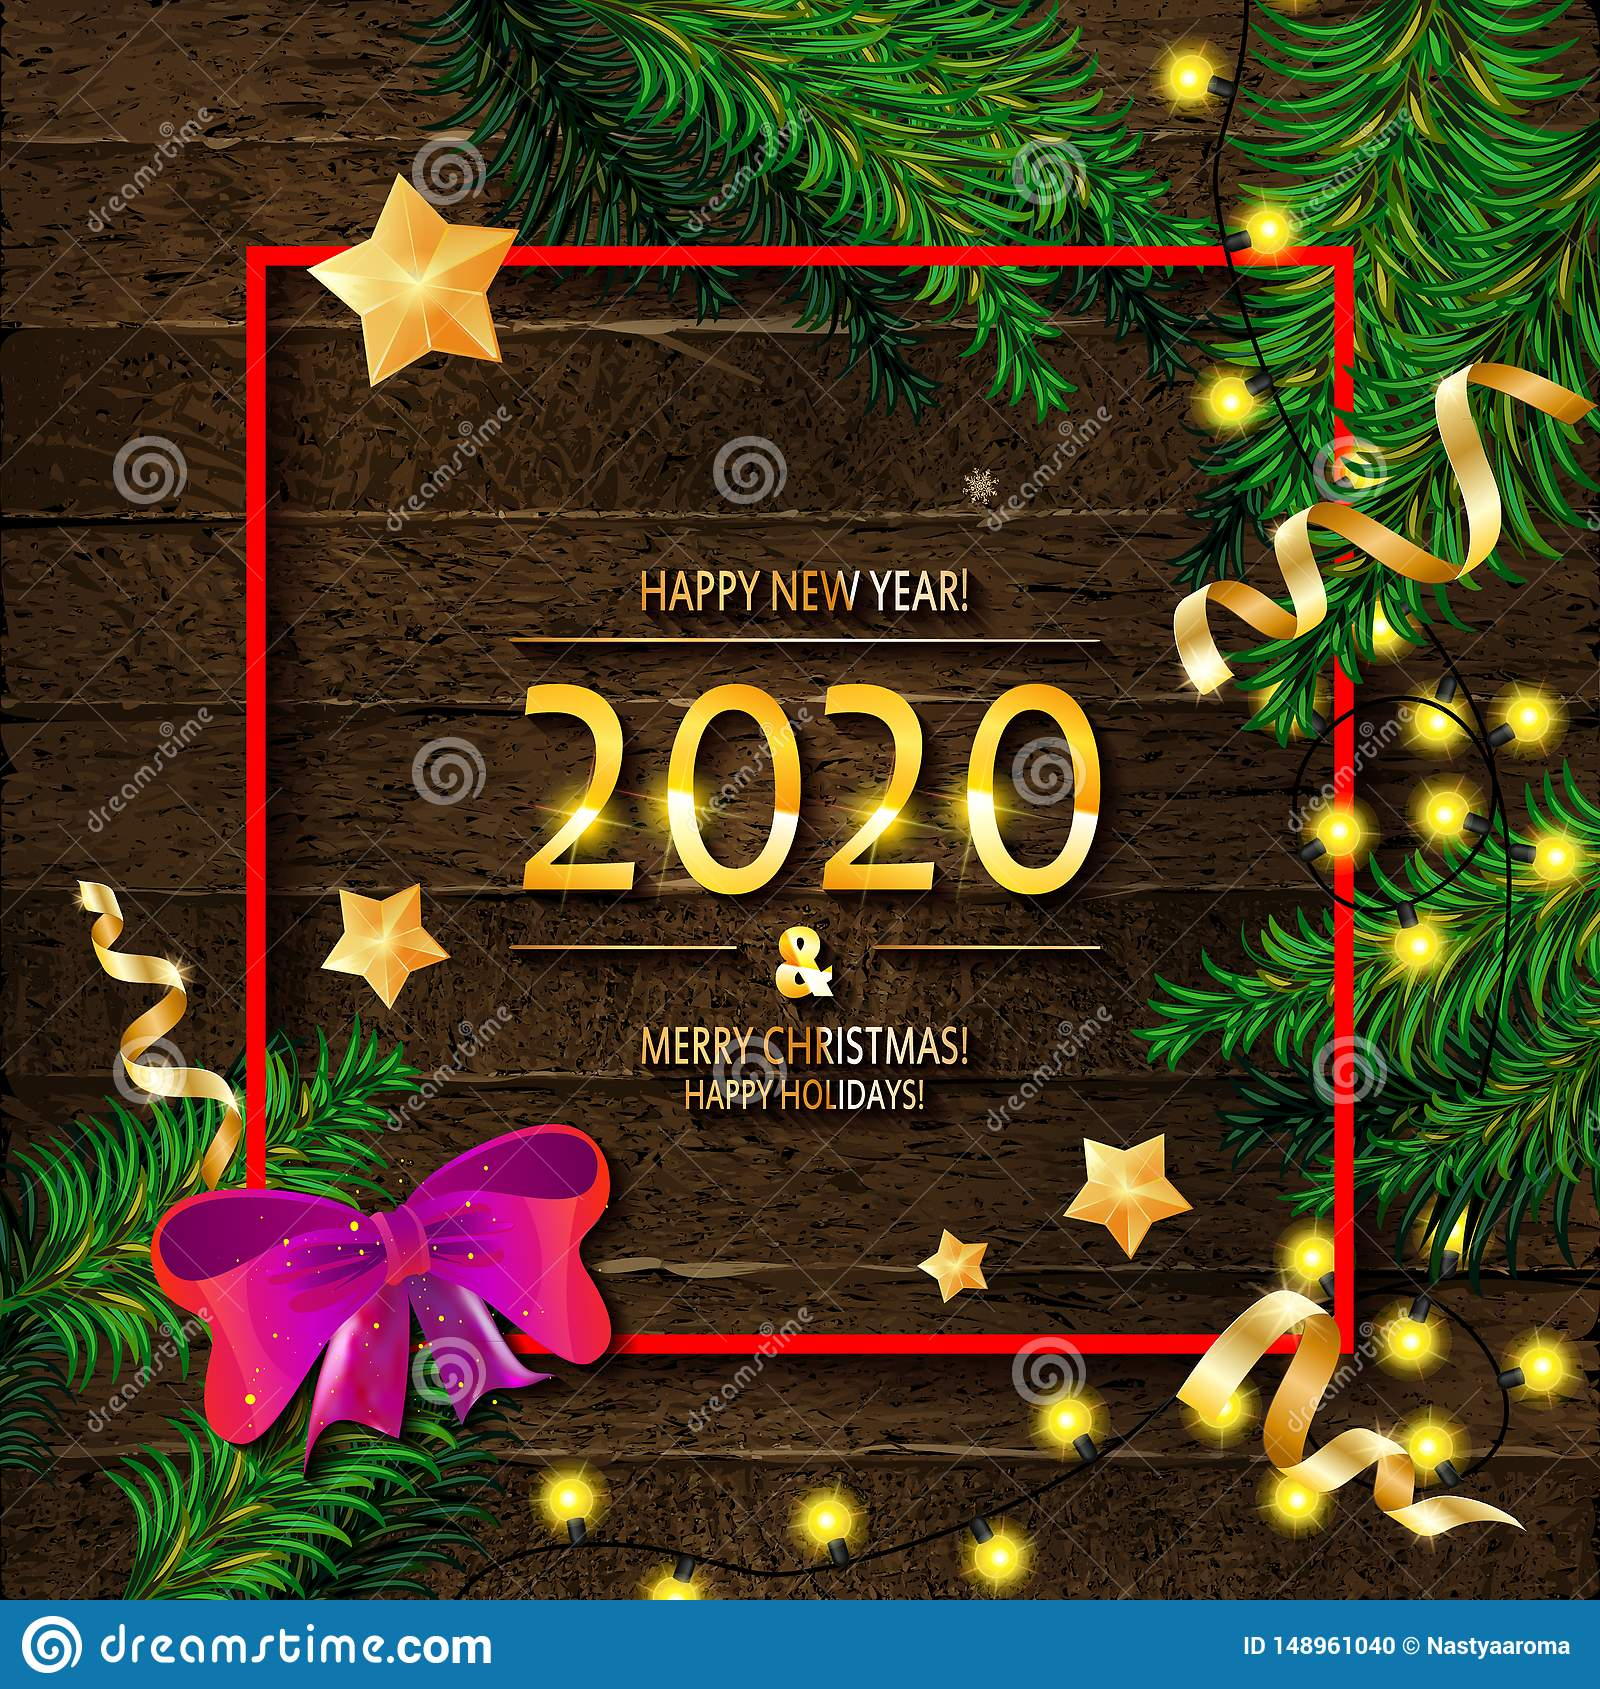 Merry Christmas Images 2020.2020 Happy New Year And Merry Christmas Stock Illustration